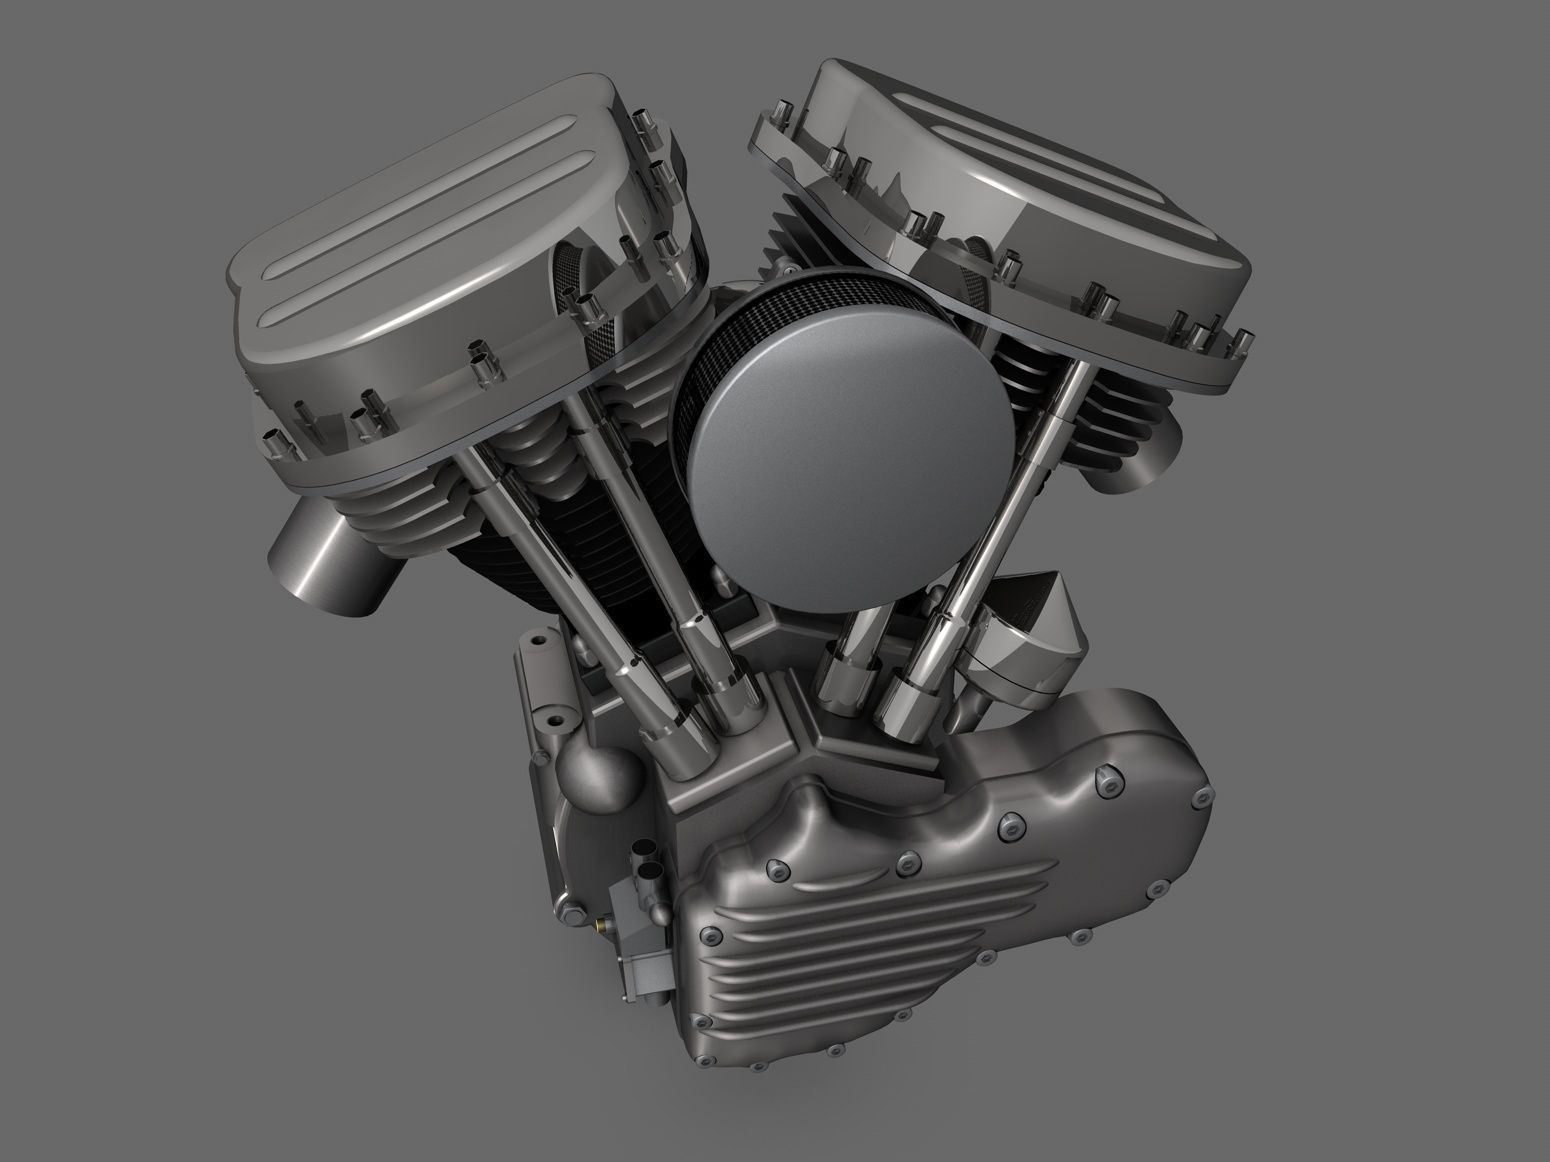 panhead harley motorcycle engine 3d model obj 3ds fbx c4d dxf stl